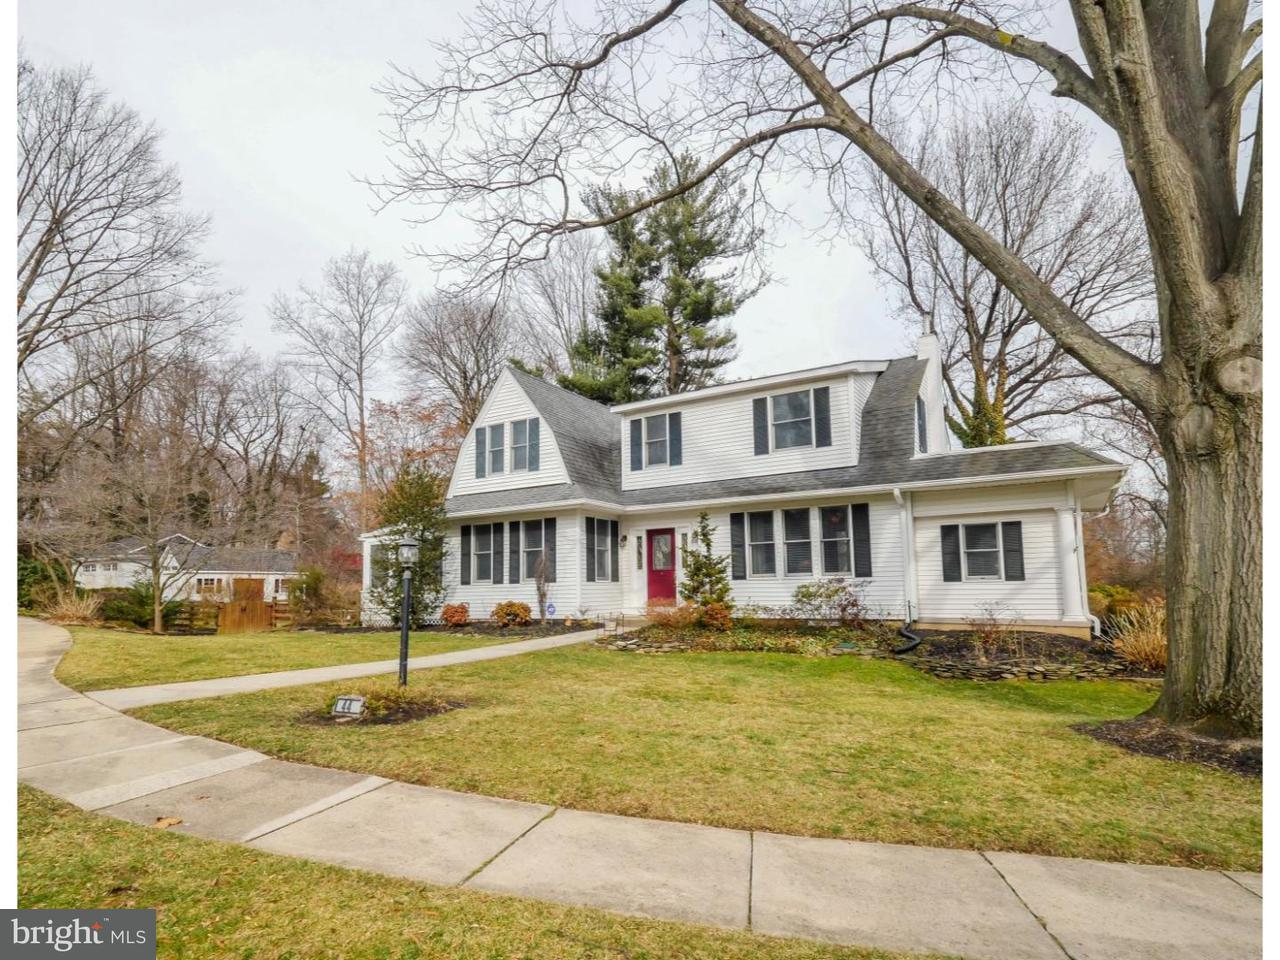 Single Family Home for Sale at 44 FAIRVIEW Avenue Morrisville, Pennsylvania 19067 United States